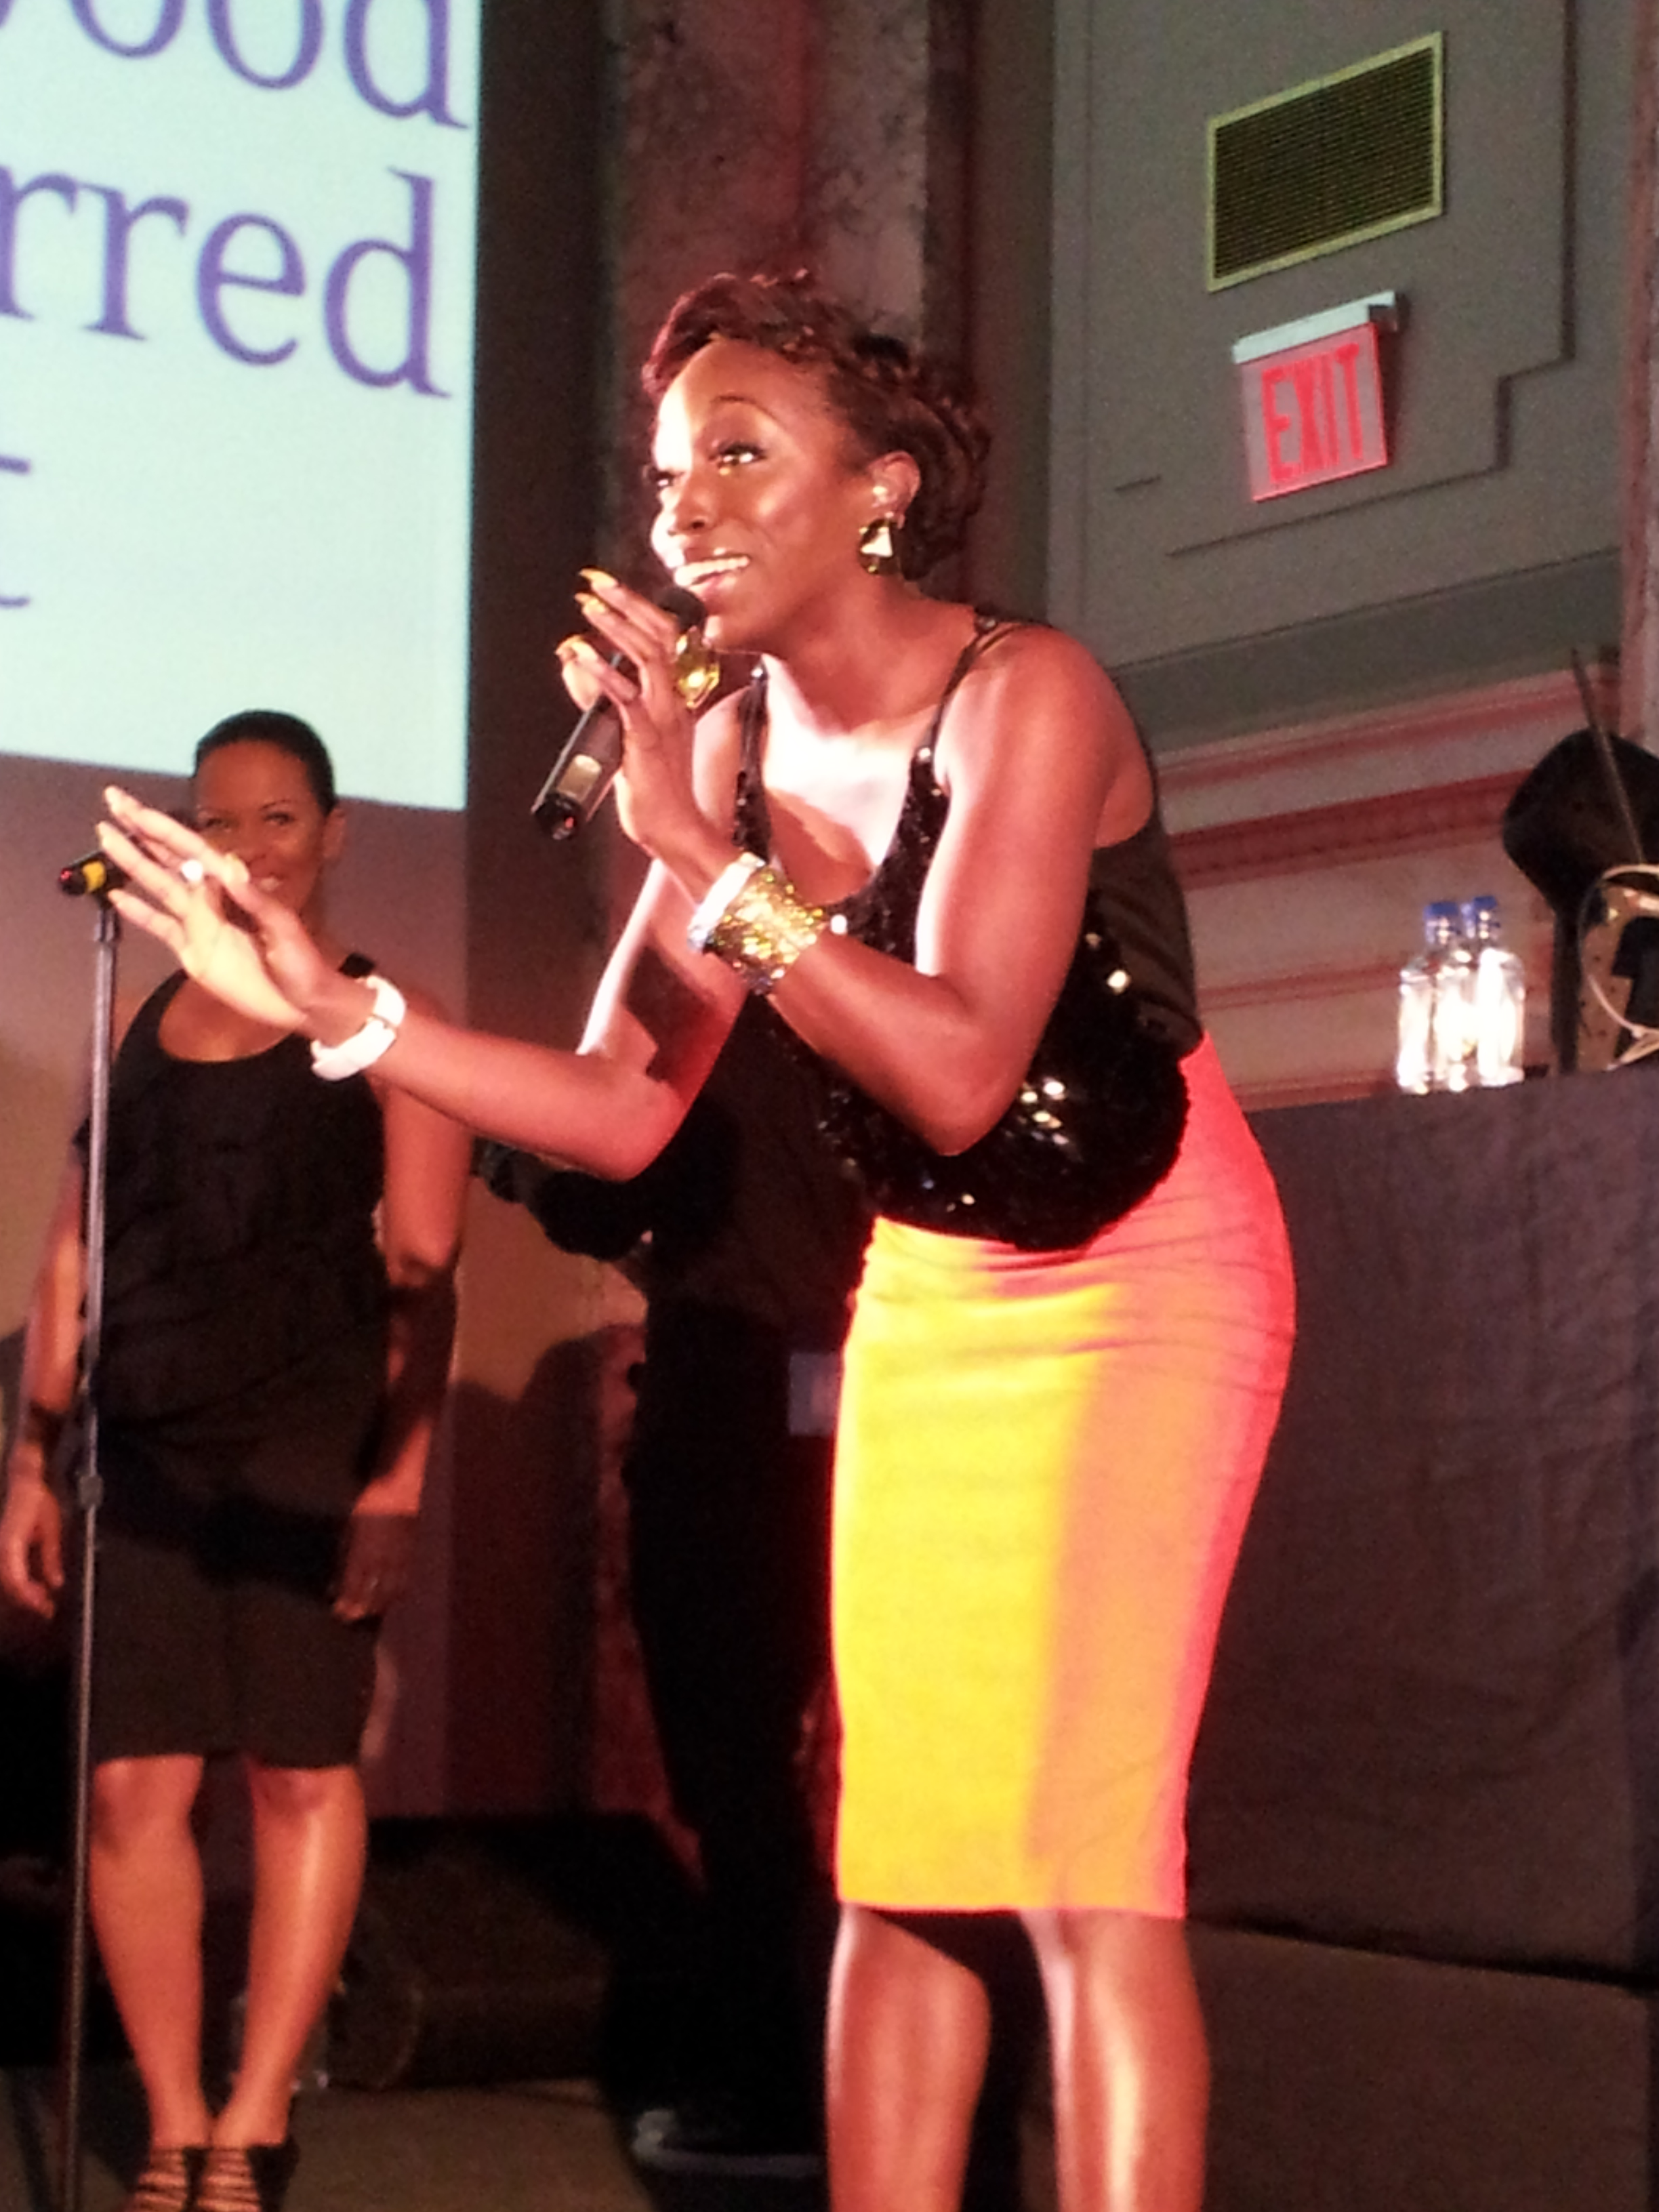 starwood event estelle Video: Estelle Performs at Starwood Preferred Guest Event (NYC).